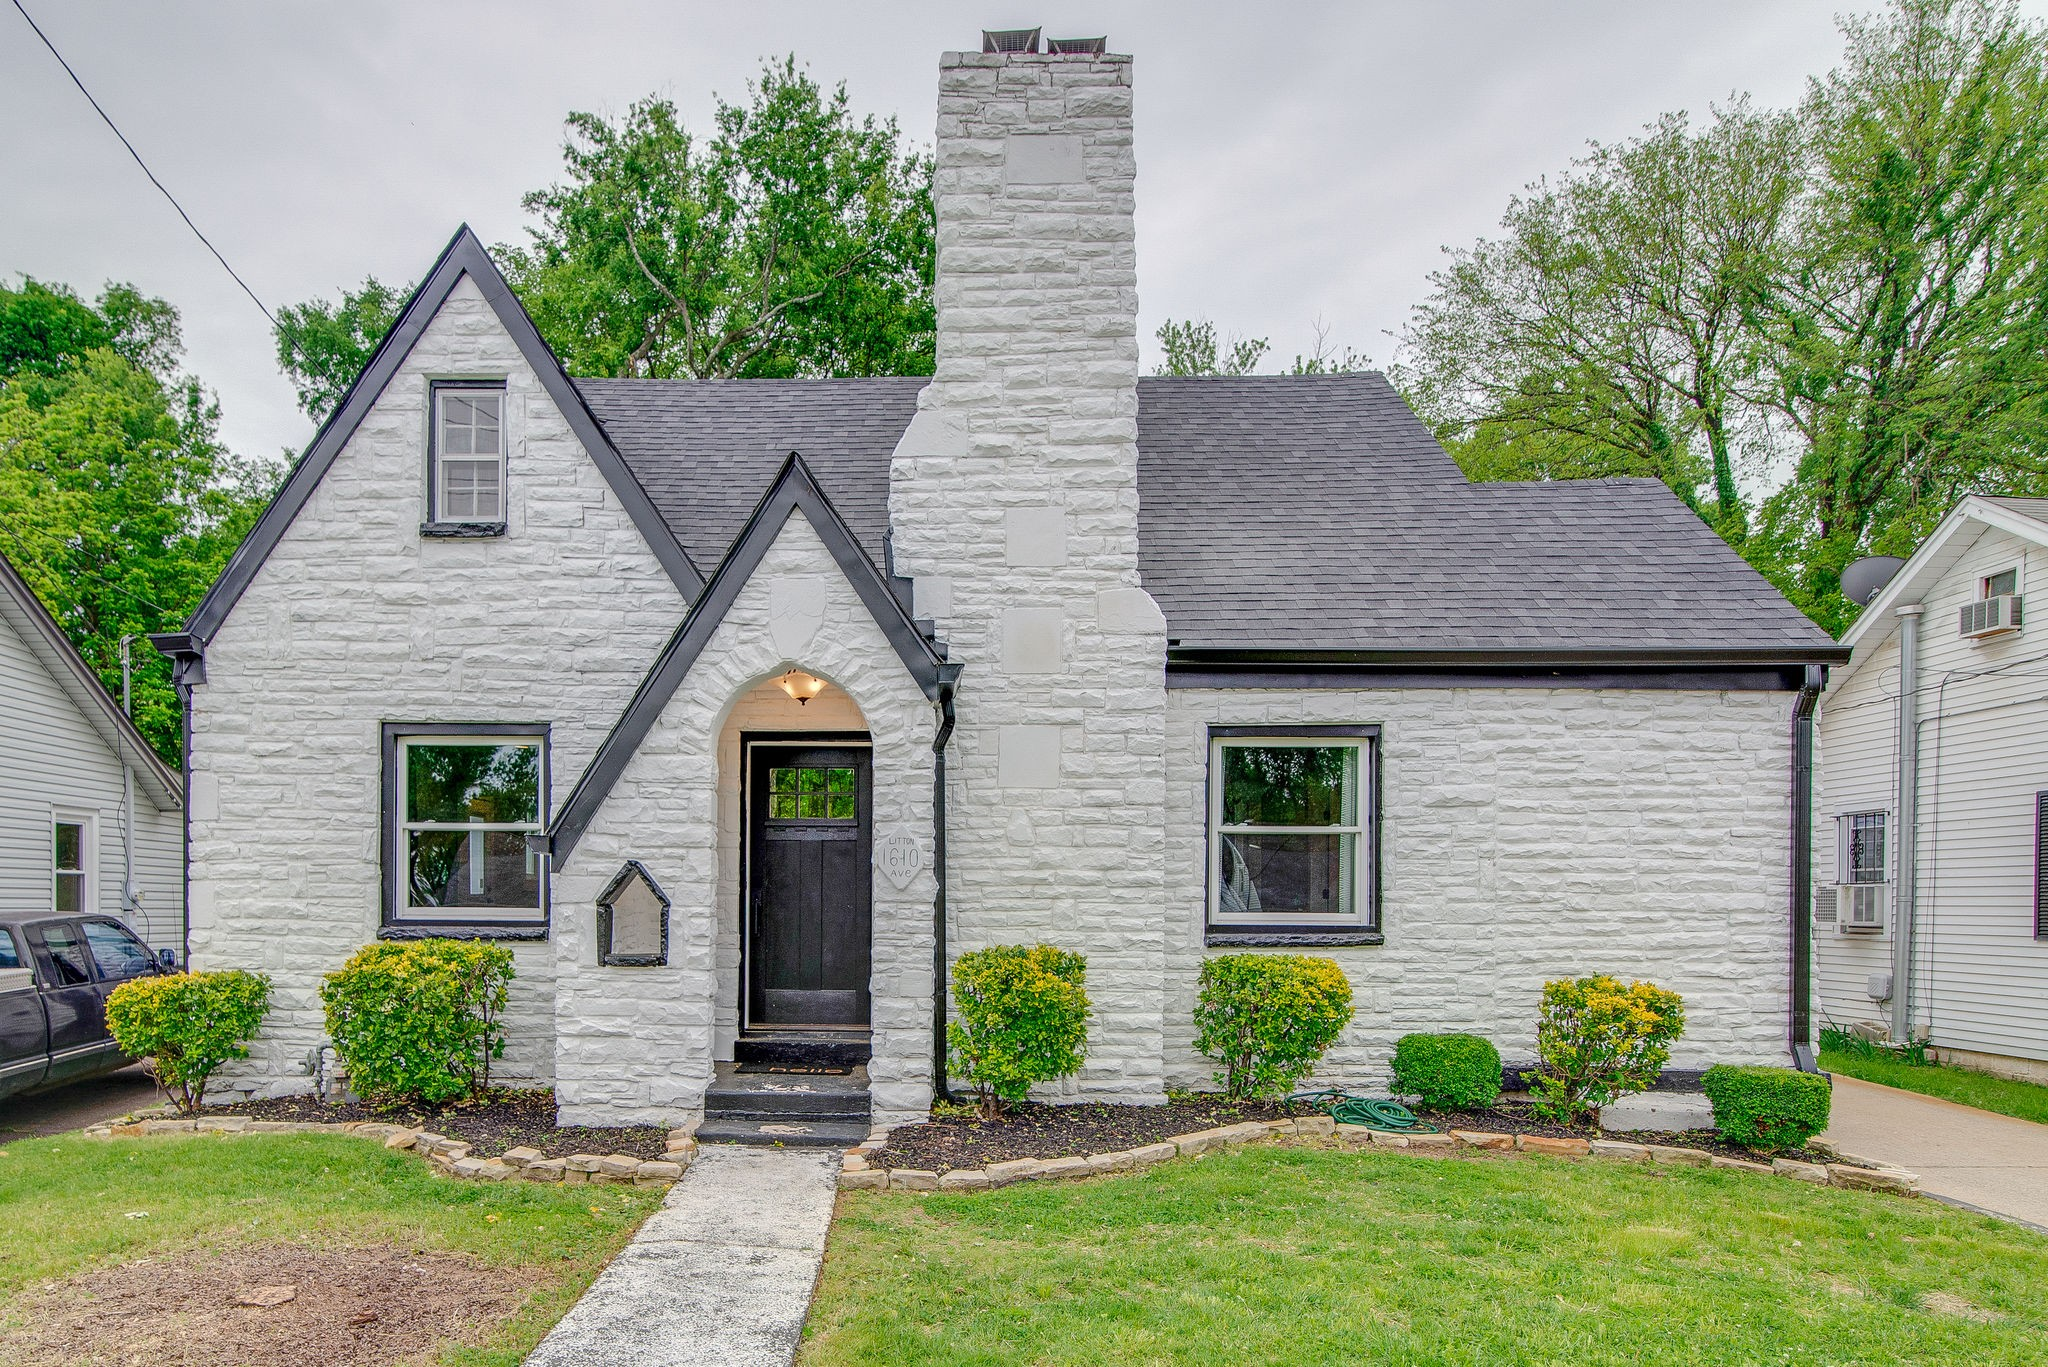 Waters Place Homes For Sale Nashville TN